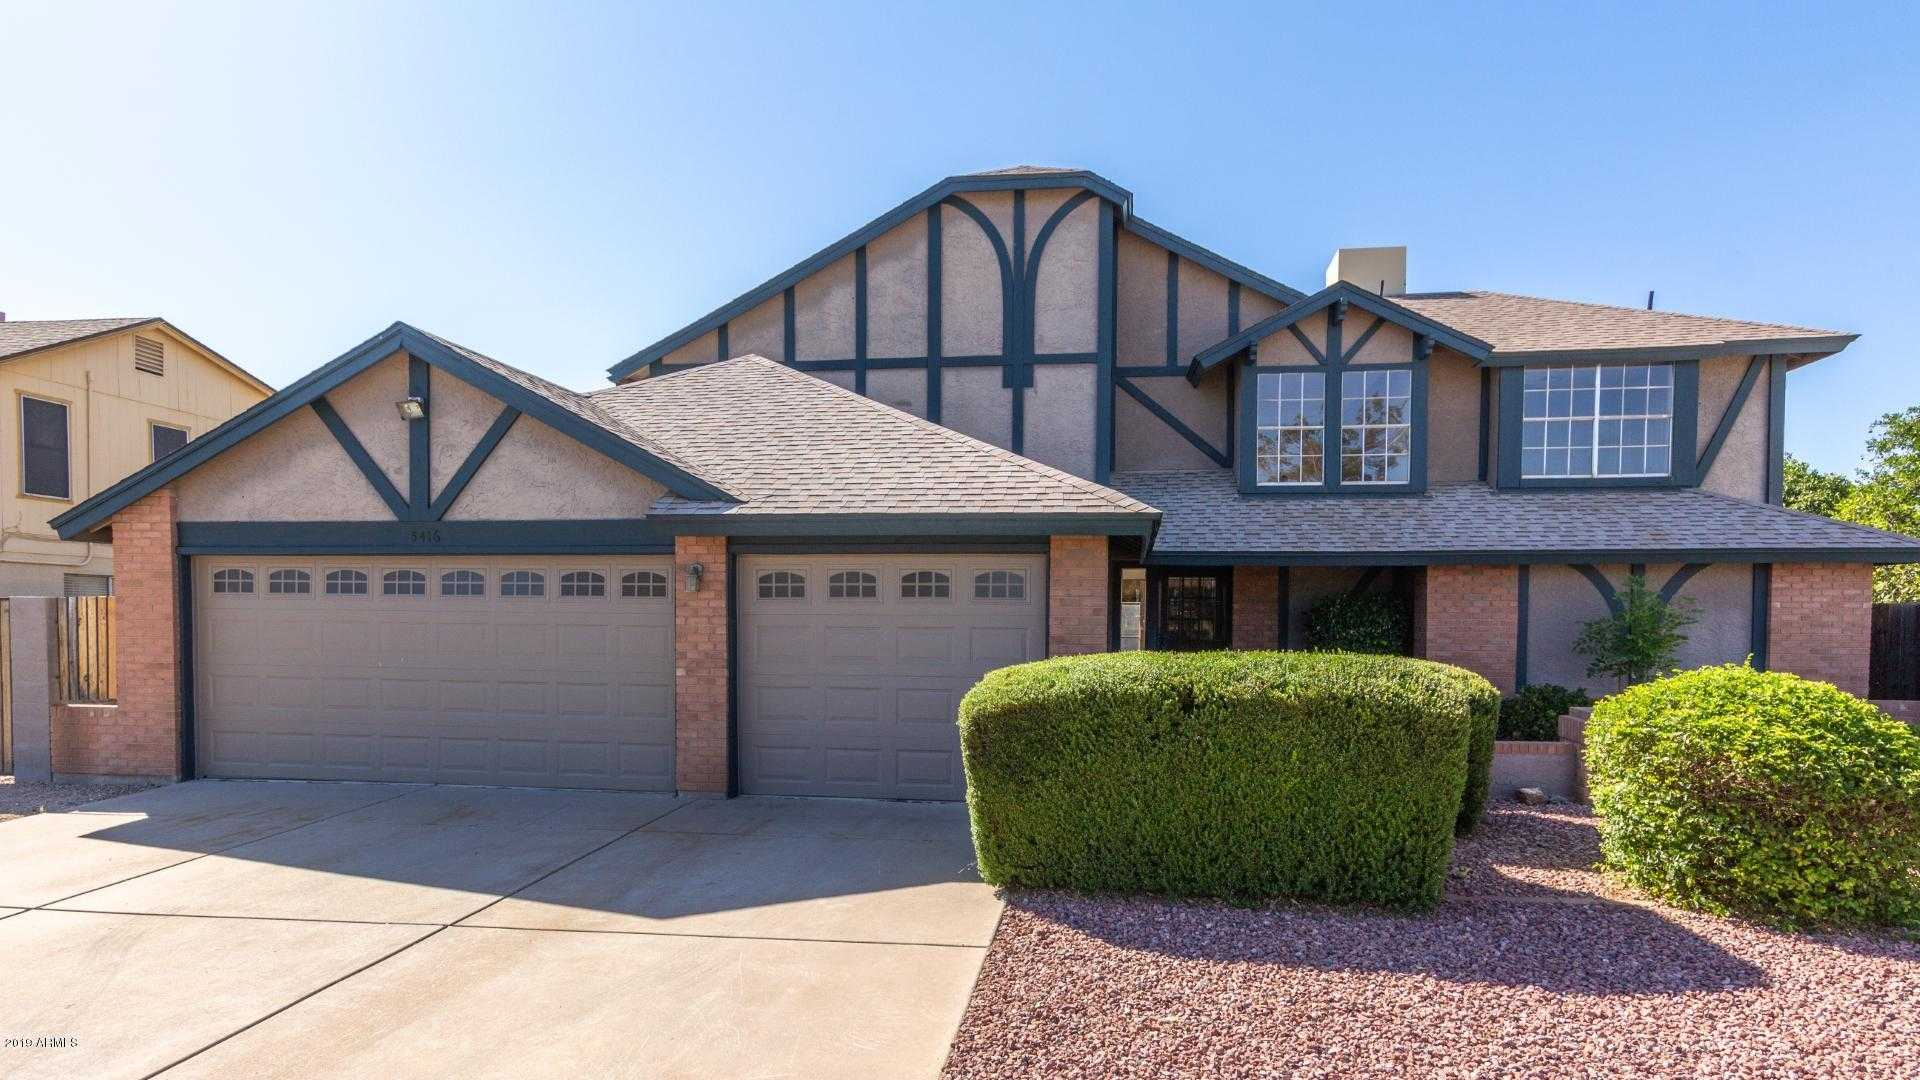 $360,000 - 5Br/4Ba - Home for Sale in Hickory Shadows 2 Lot 1-133 Tr A, Glendale